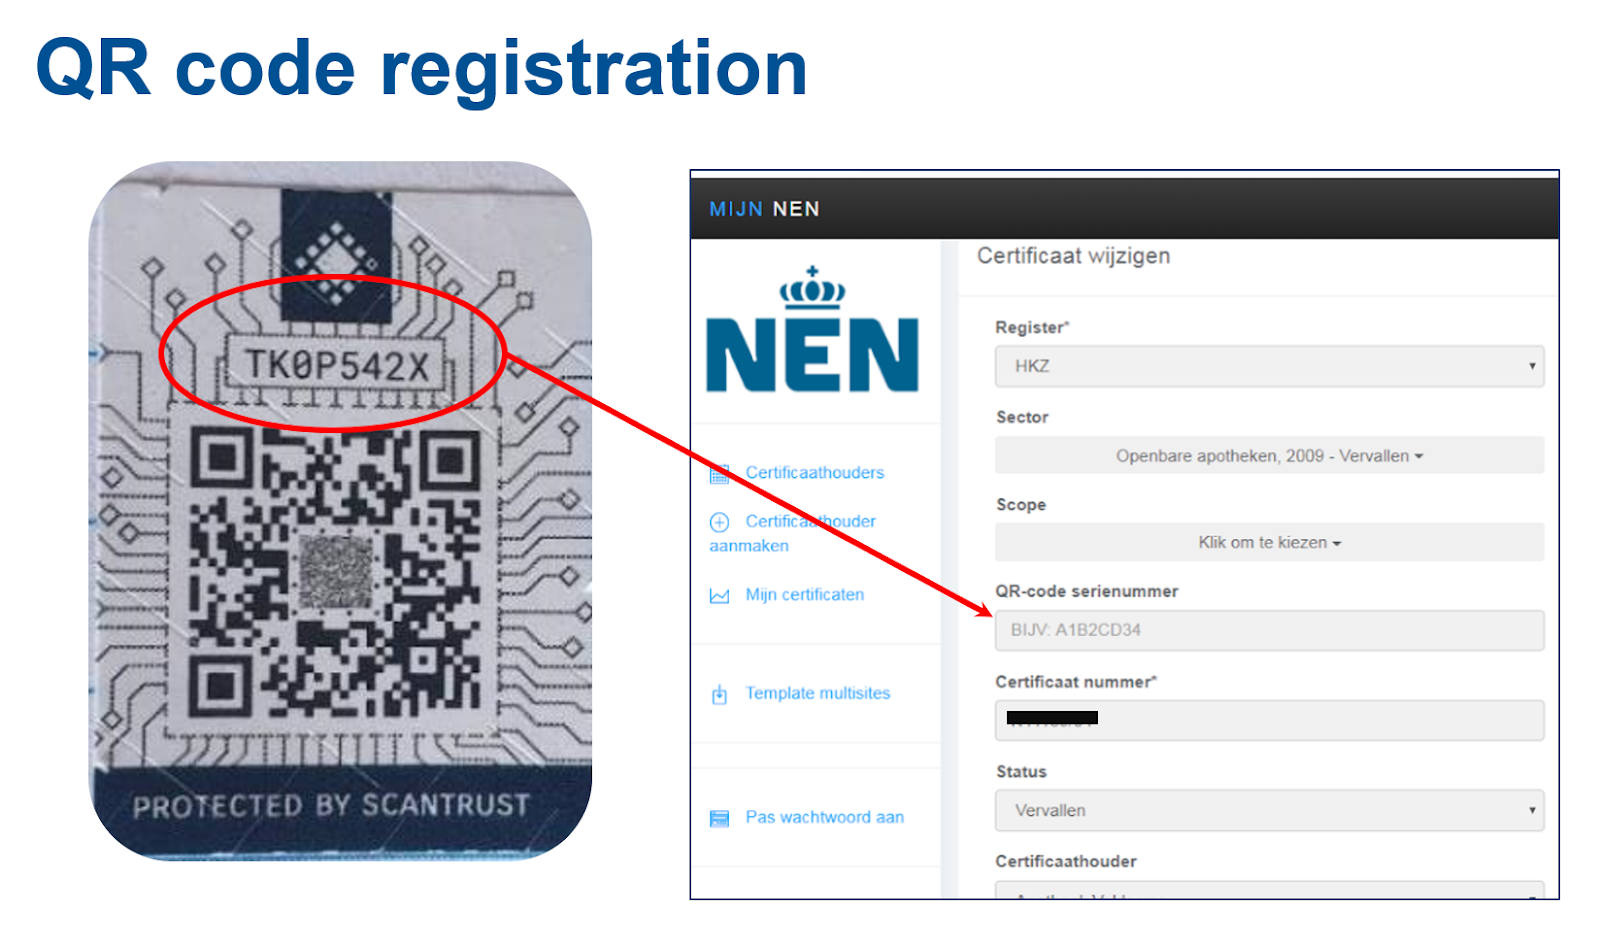 Each certificate has it's unique number that will be used for the registration process through a specific webpage from NEN. The certificate will then be linked digitally with a smart QR code.